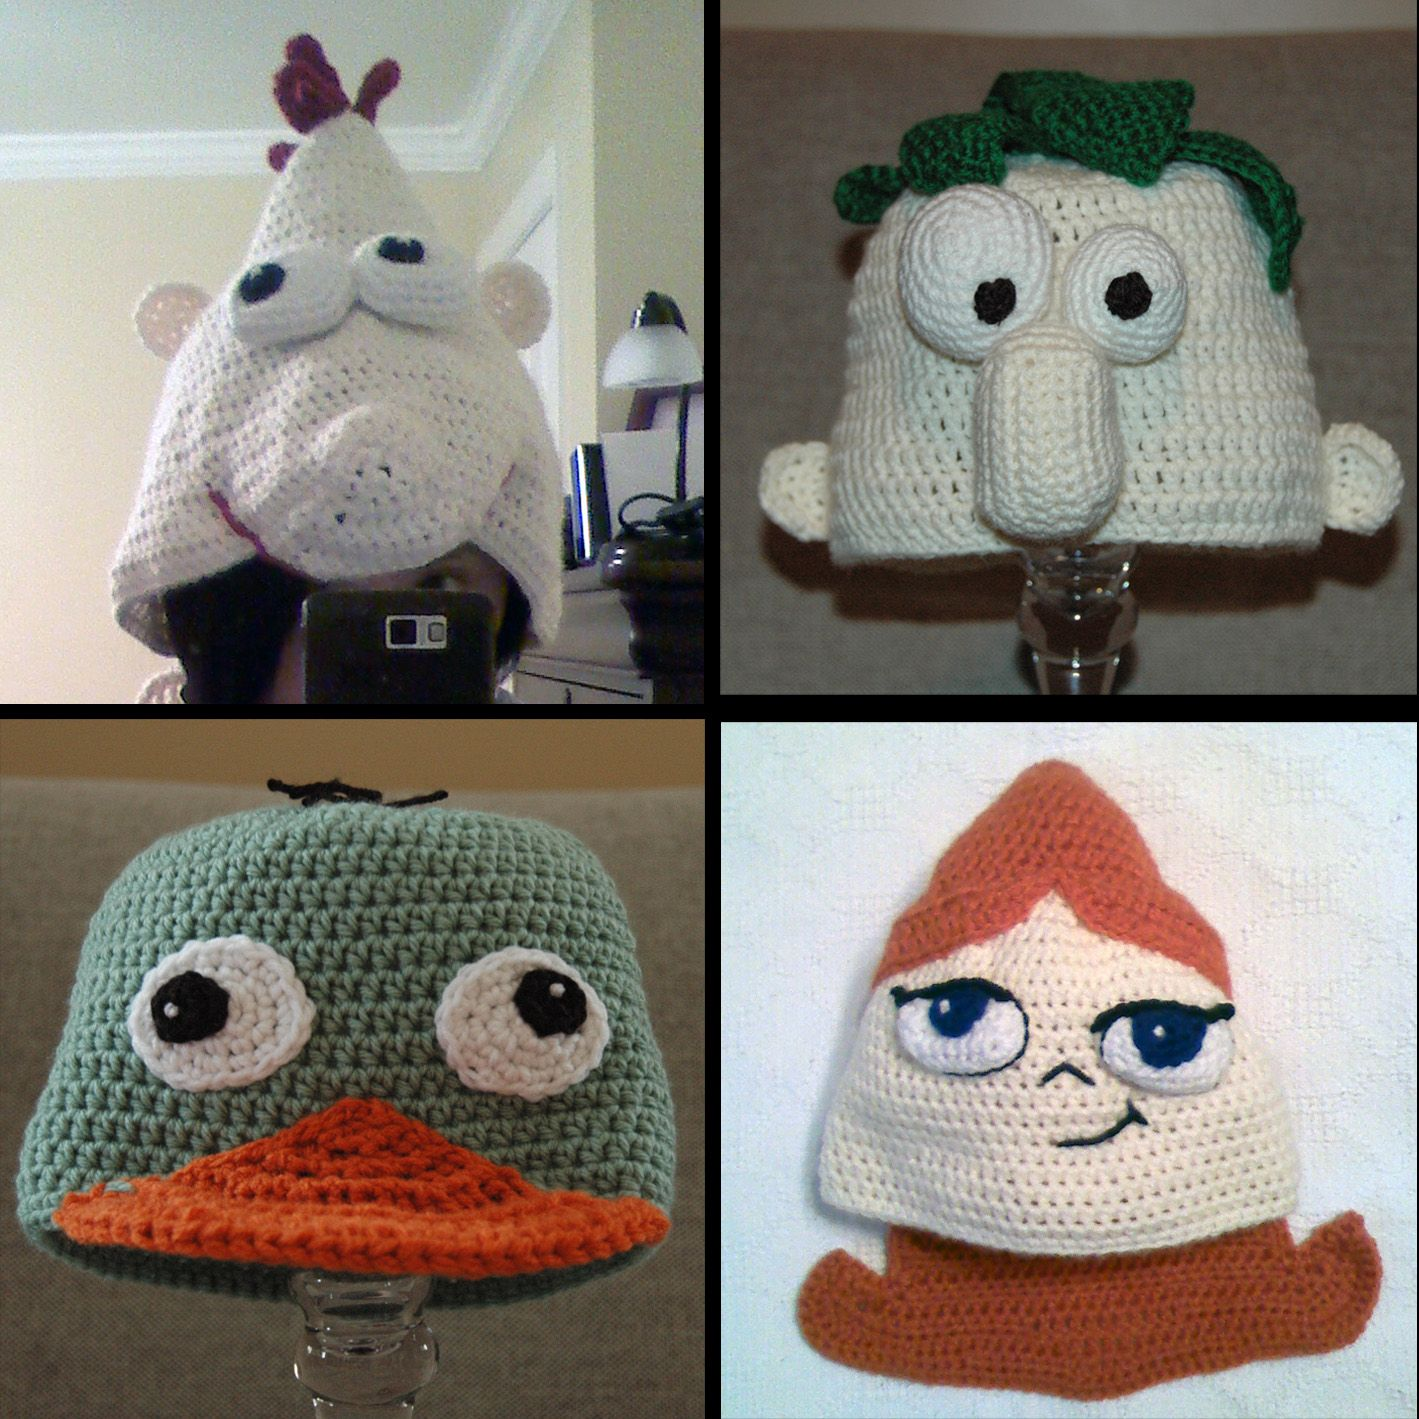 Phineas and Ferb crochet hats - Phineas, Ferb, Perry the Platypus ...